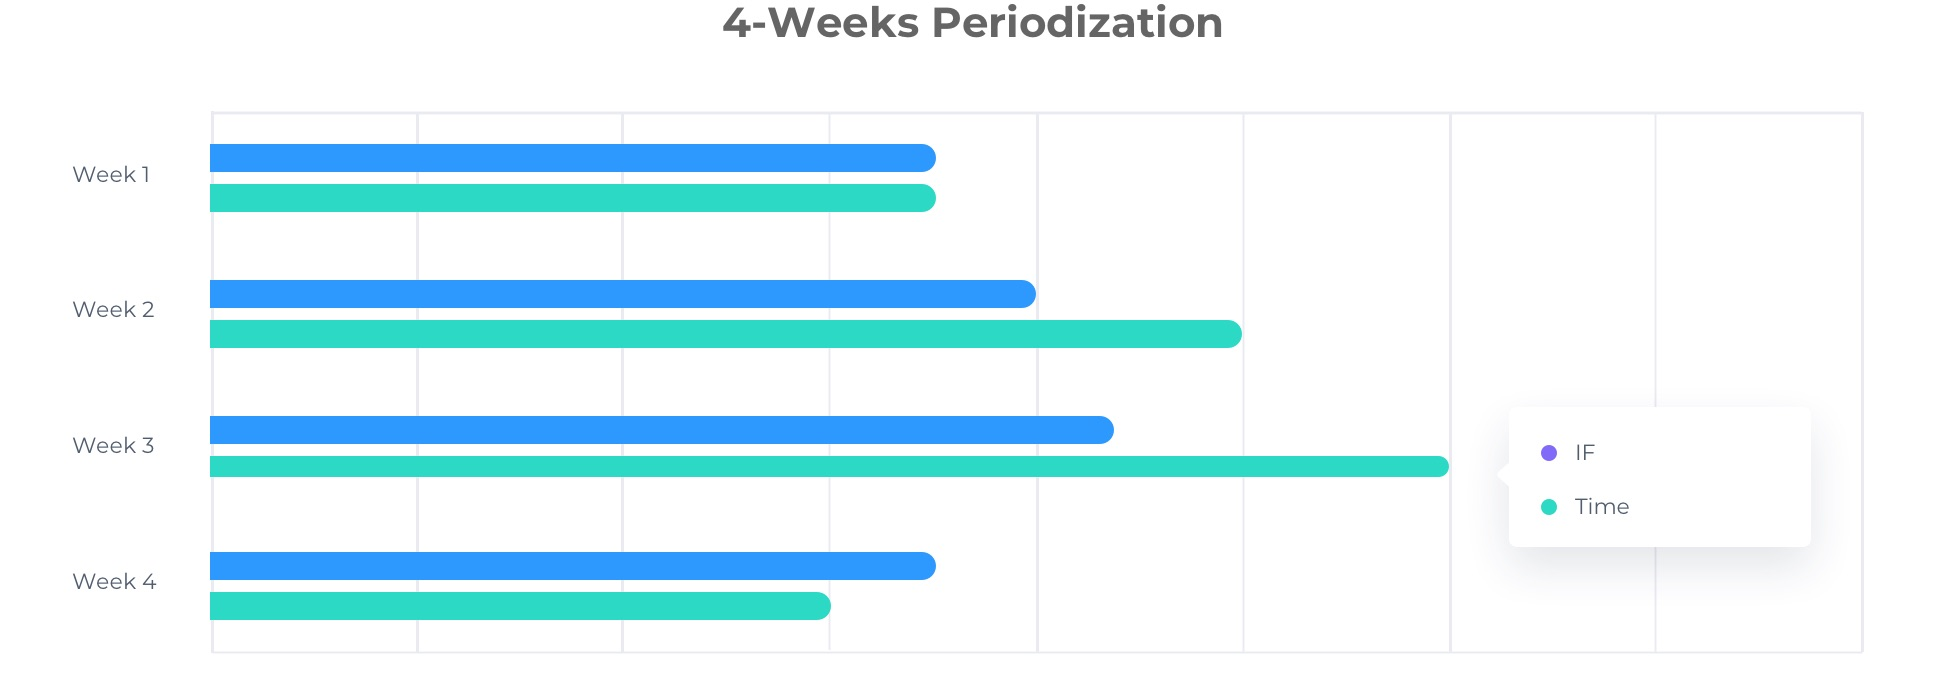 4-weeks periodization cycling